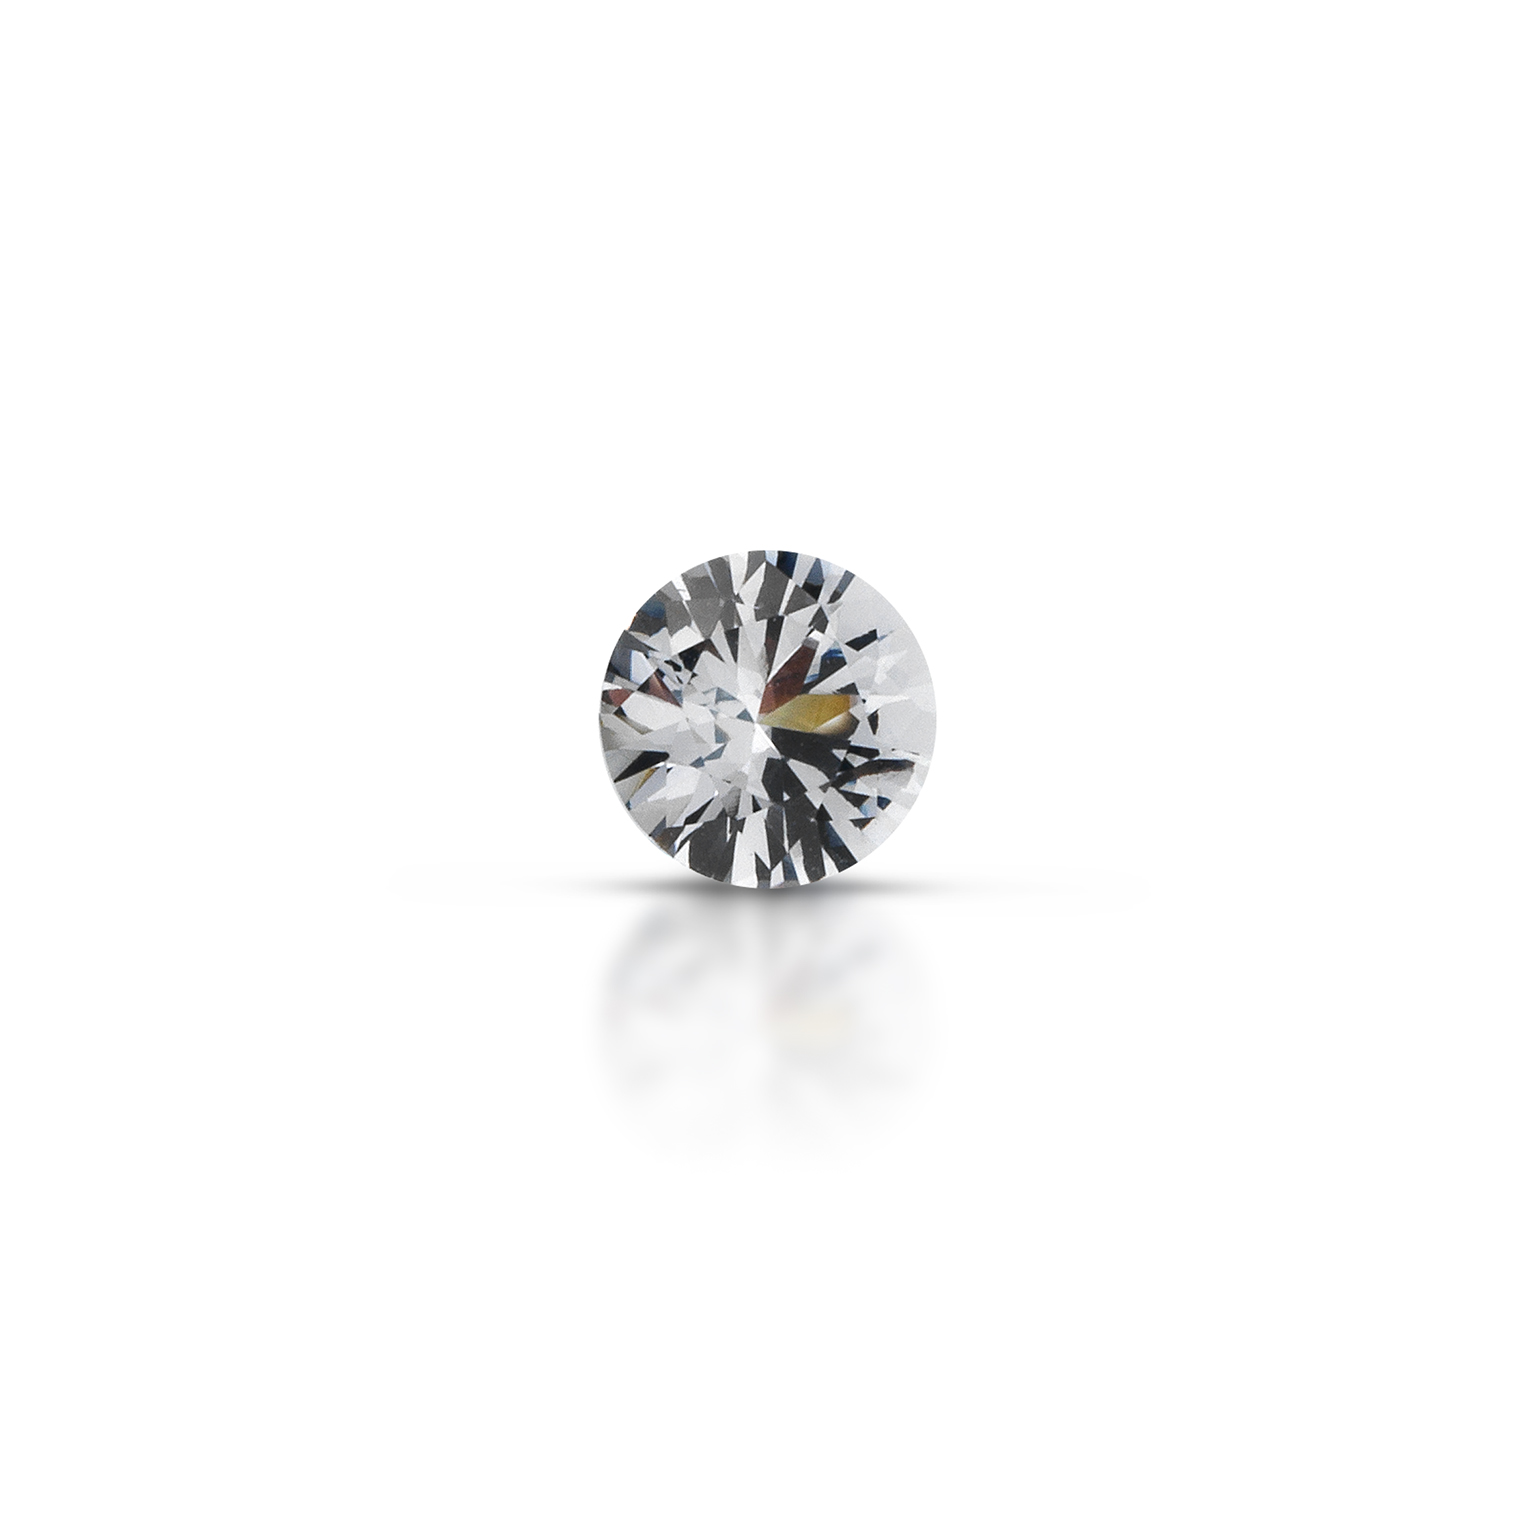 ClaudiaHamann_SpinelGrey_Tanzania_Round 6,5mm_1,07cts_SNK16C33